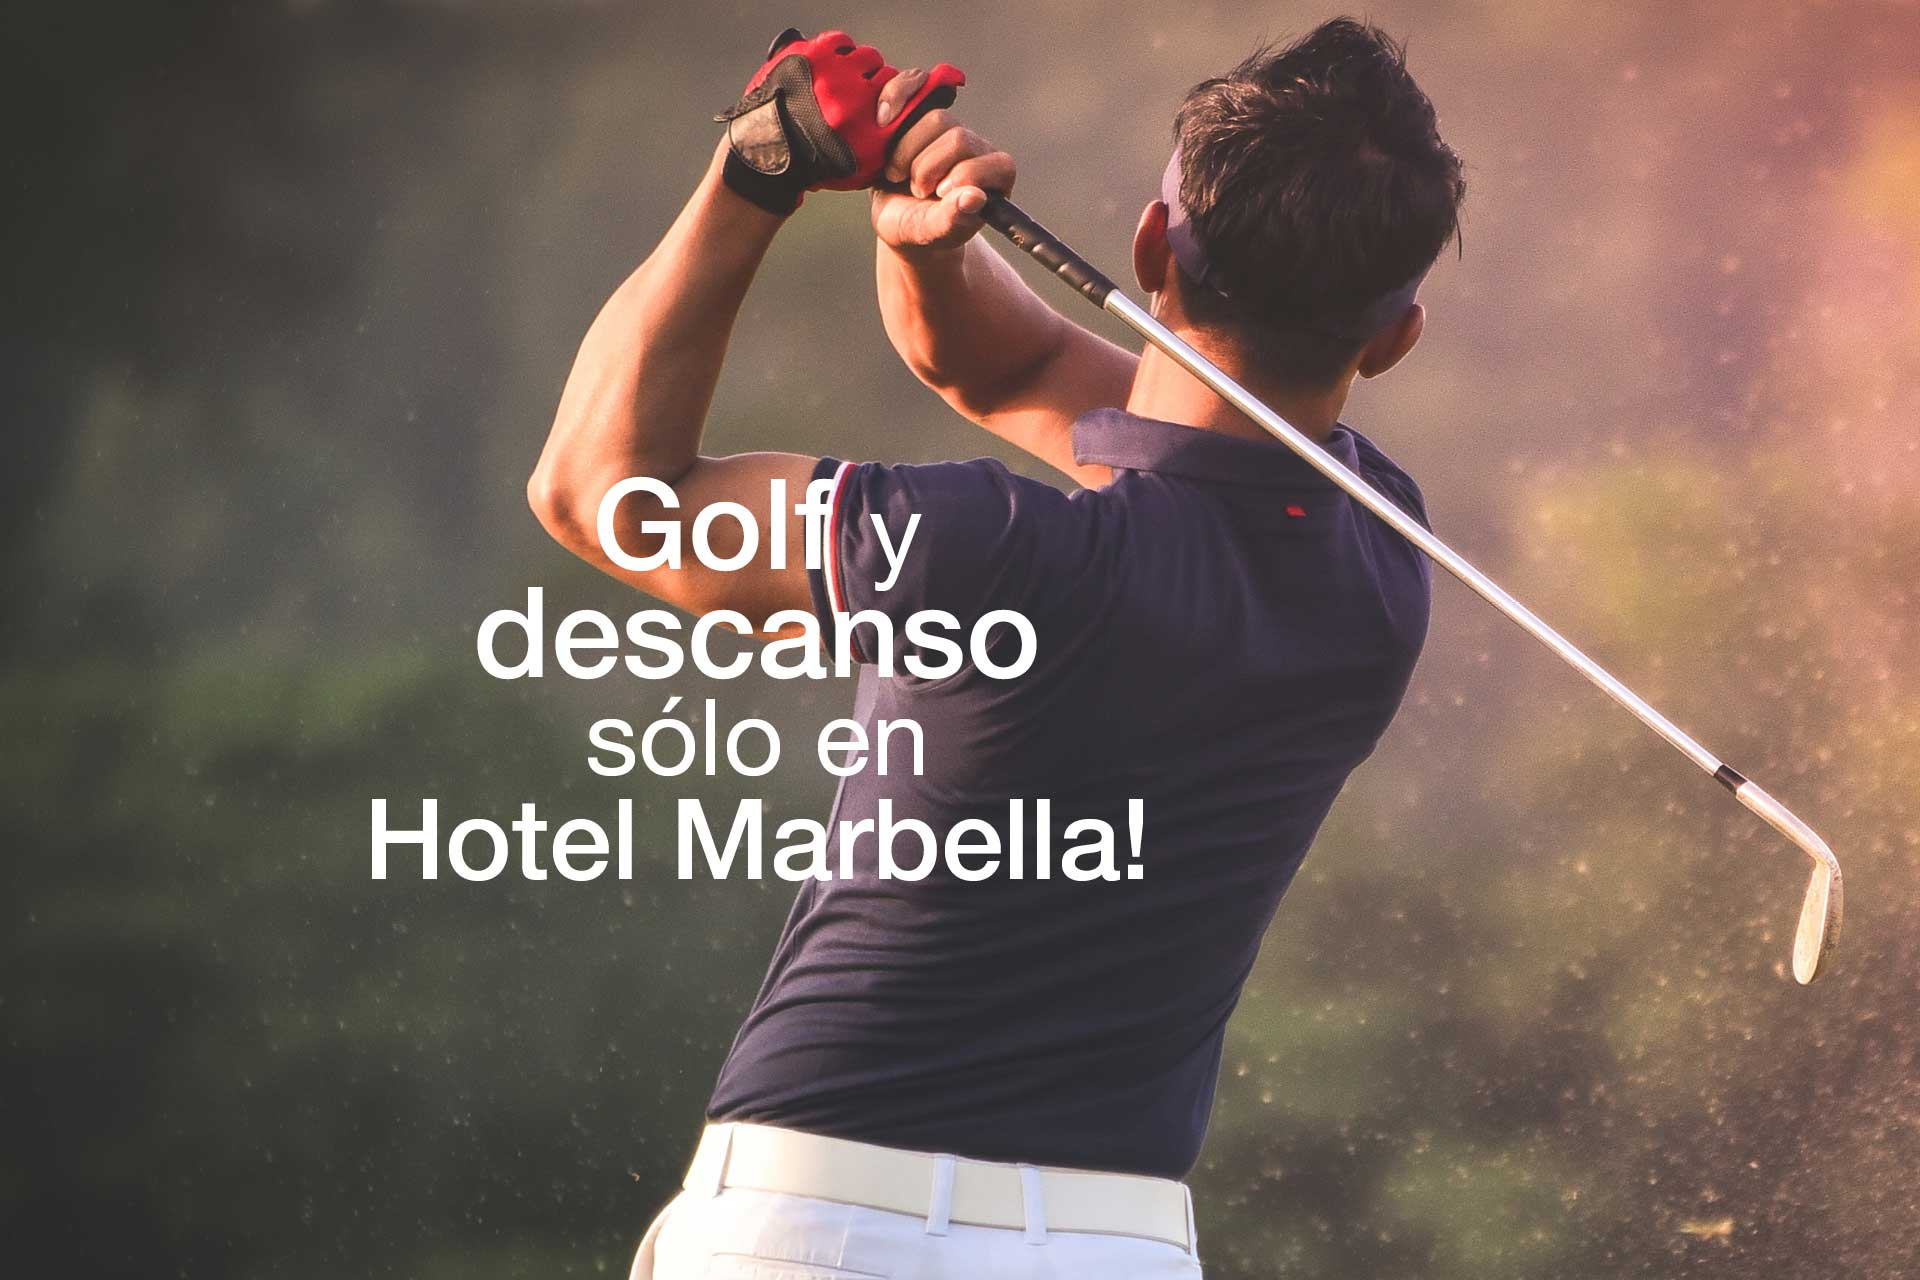 Hotel_Marbella_Resort_golf